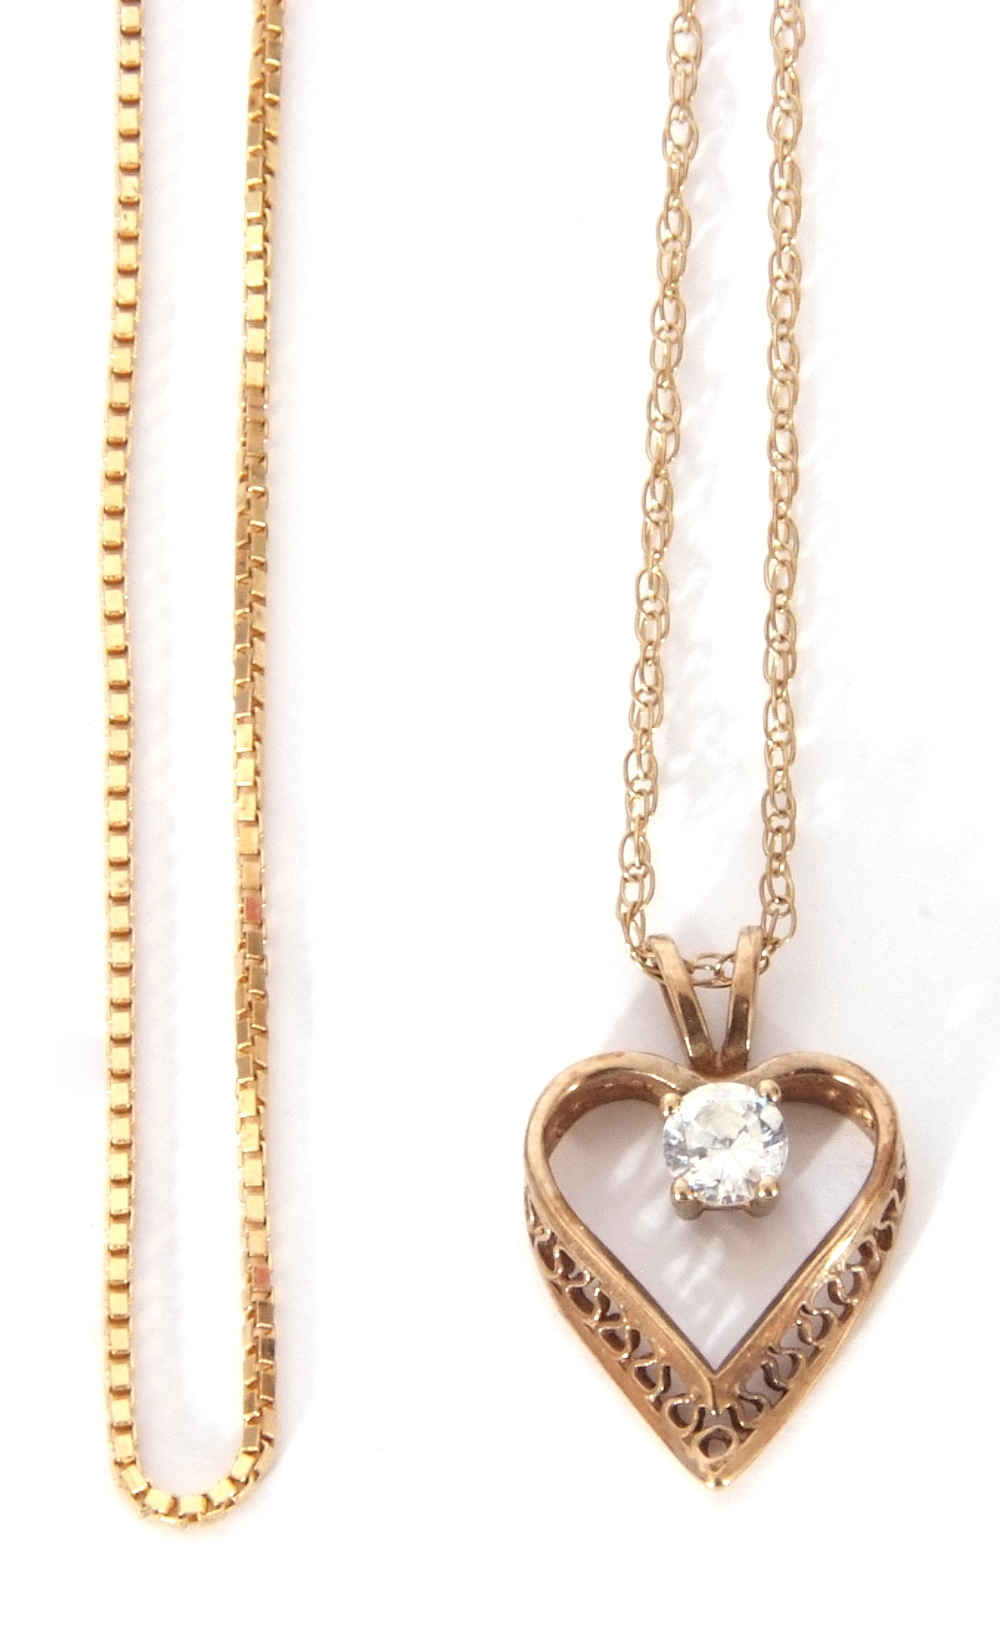 Mixed Lot: modern heart and paste set pendant suspended on a 9ct stamped trace chain, together